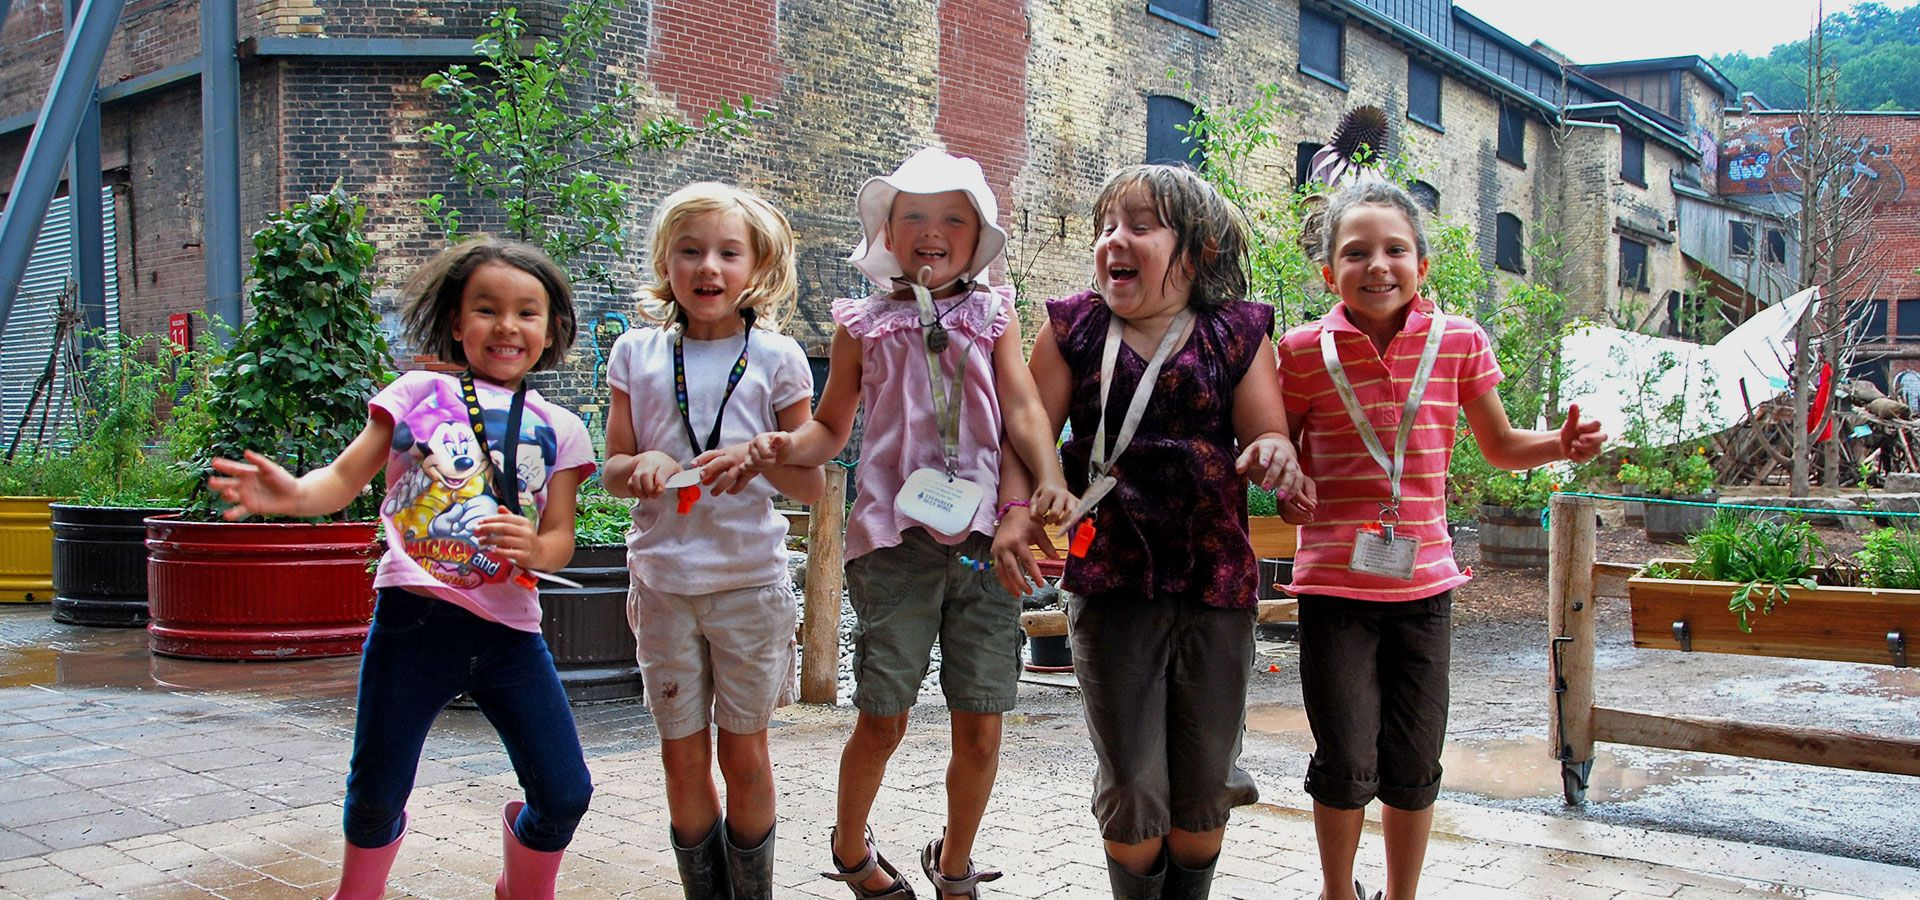 A group of girls jumping for joy in front of the Children's Garden at Evergreen Brick Works.